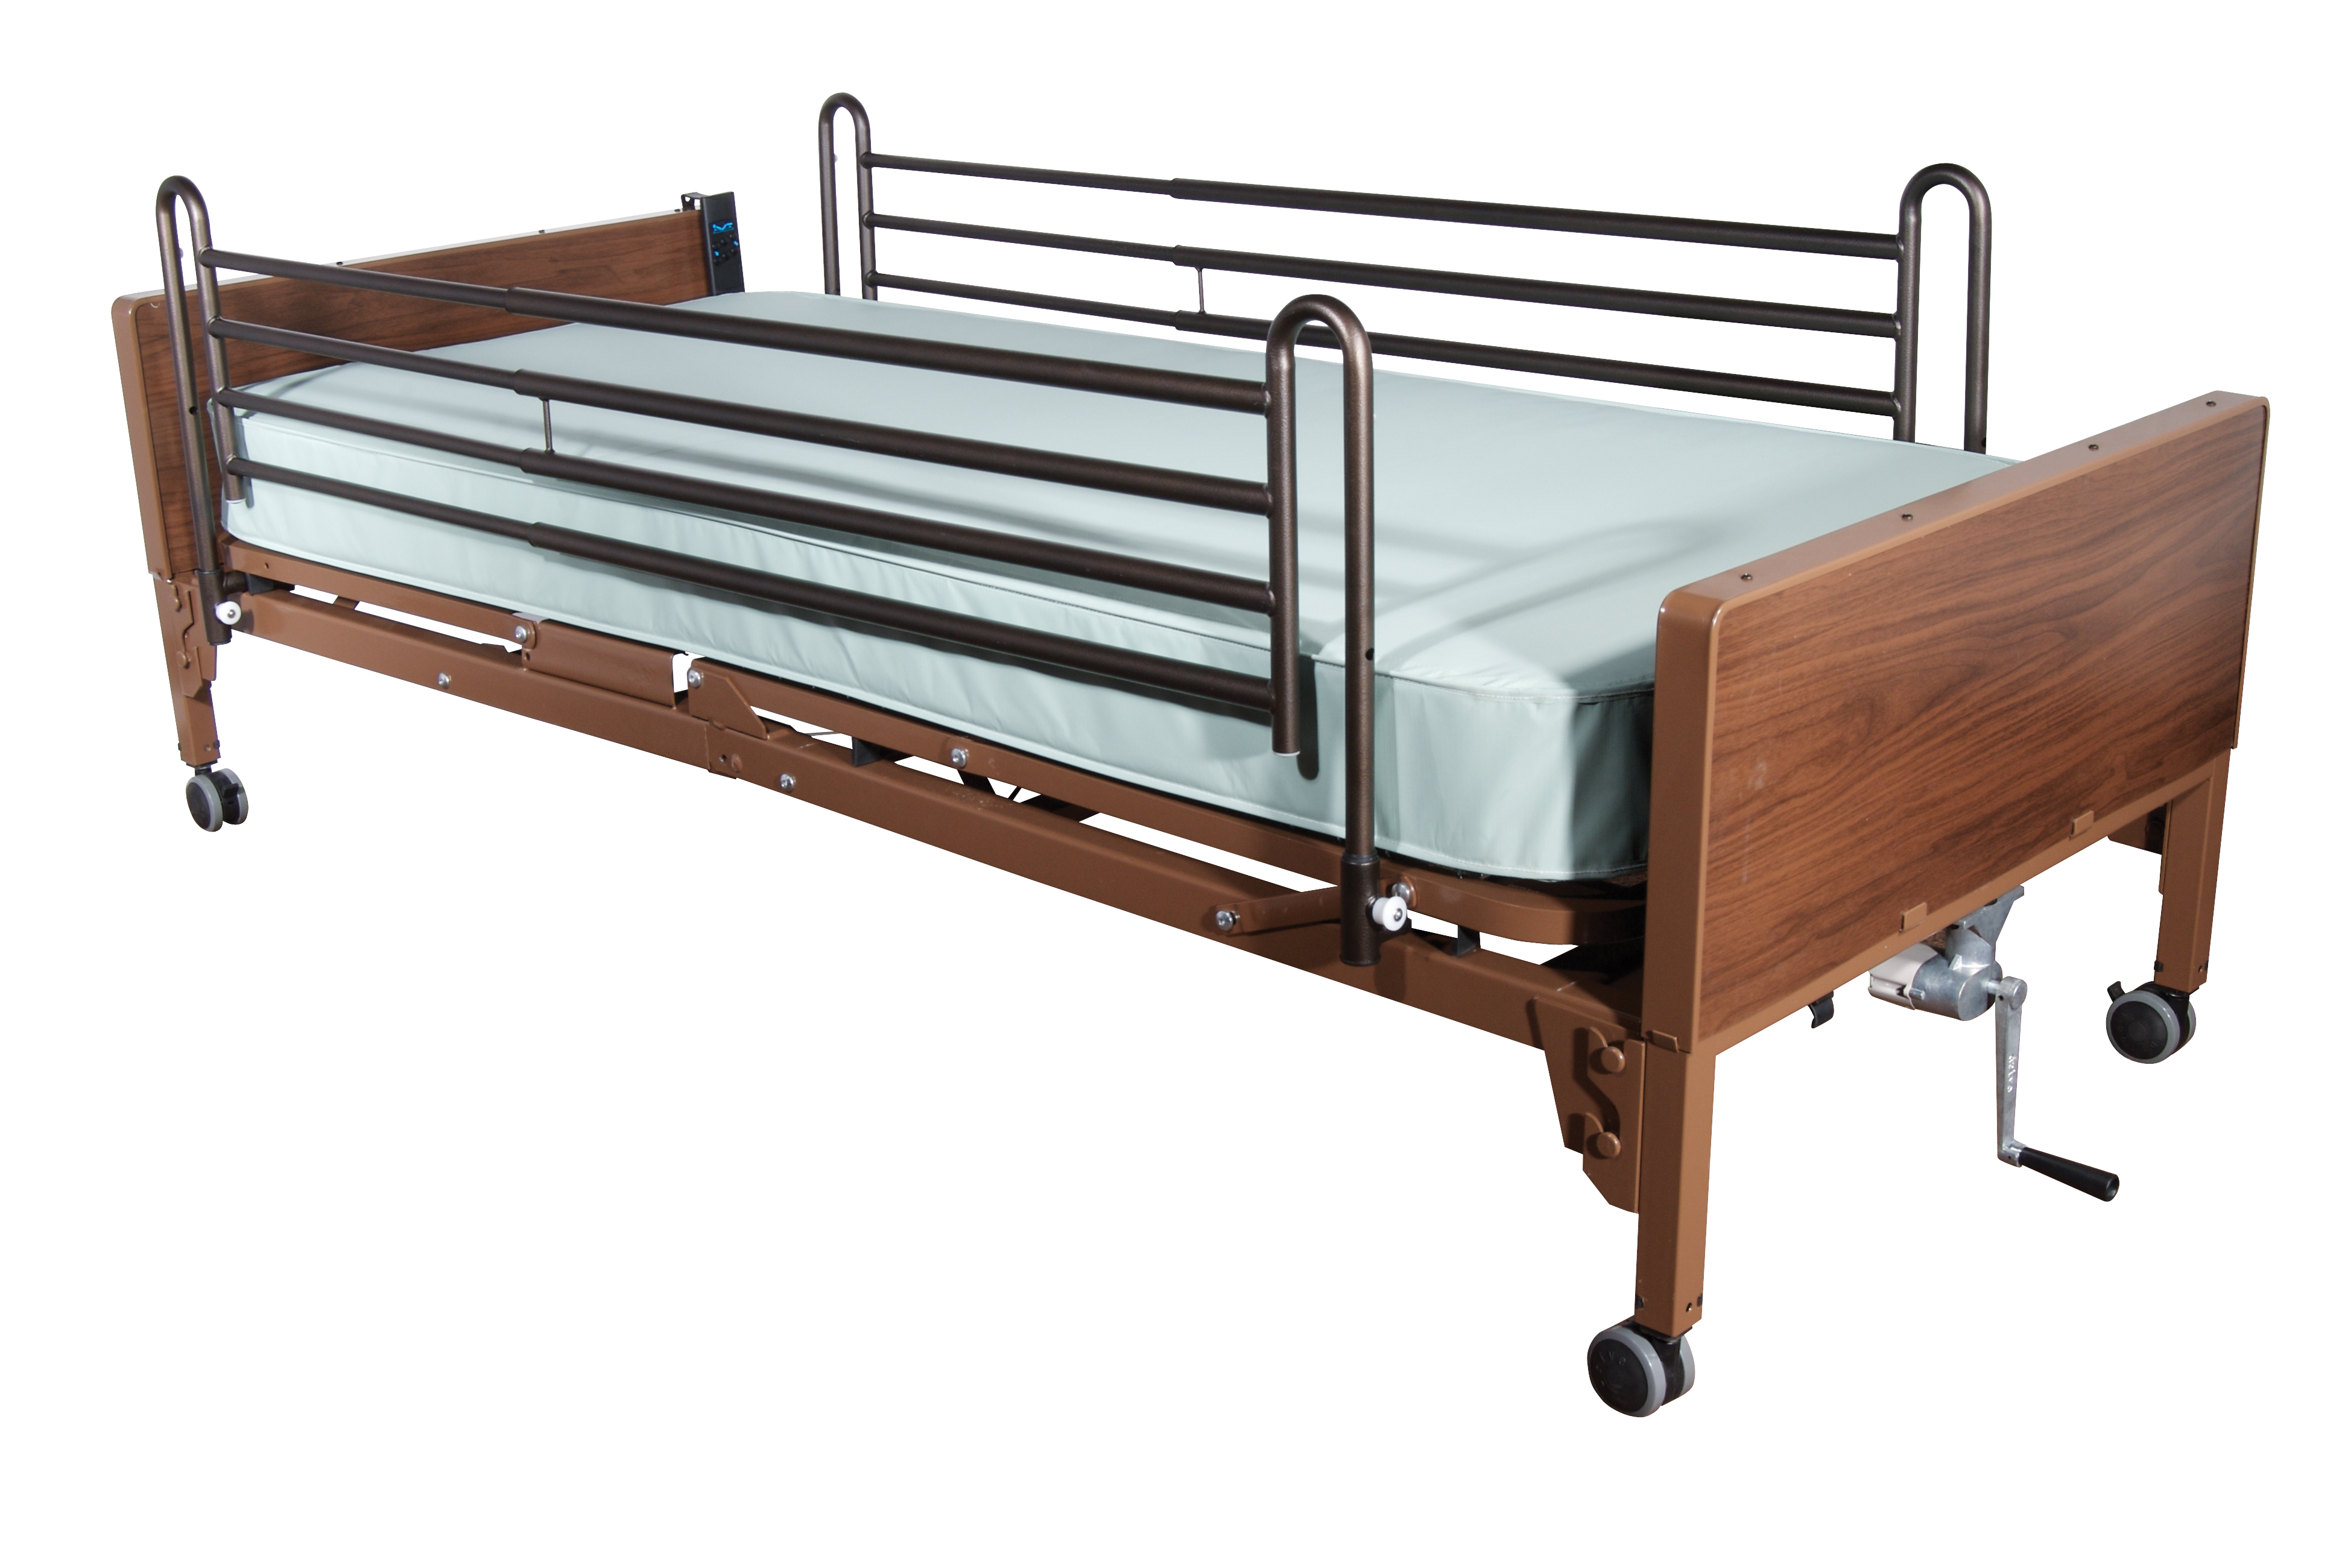 What Is The Length Of A Full Size Bed Rail